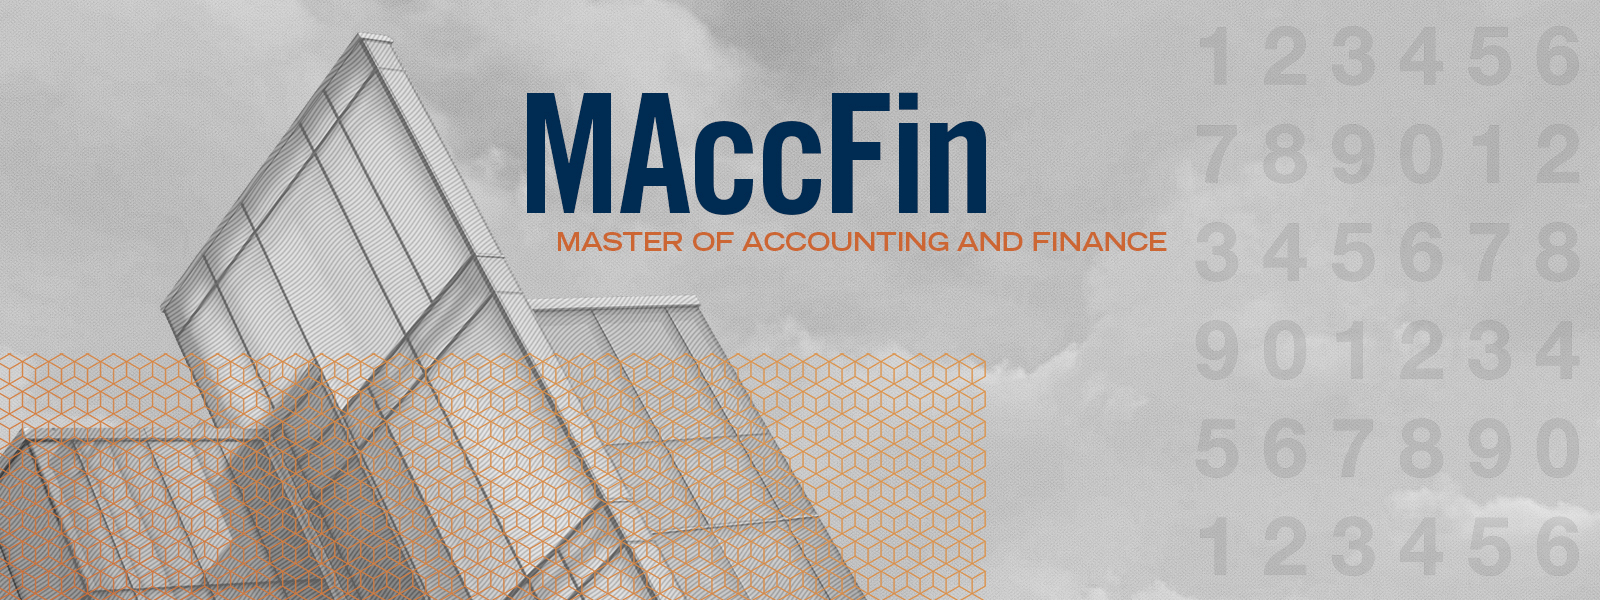 MAccFin: Master of Accounting and Finance